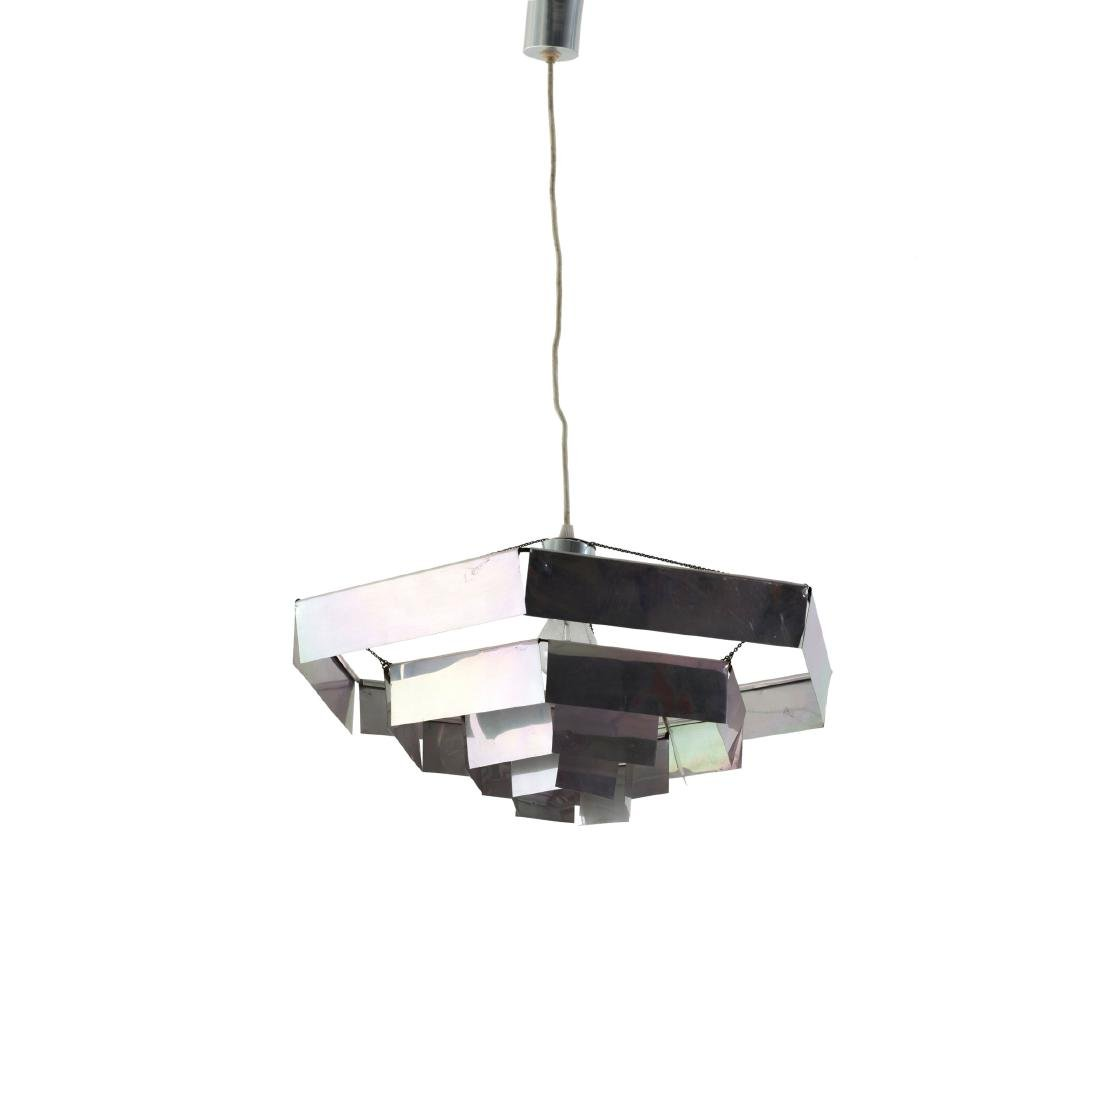 'Esagonale' ceiling light, 1964